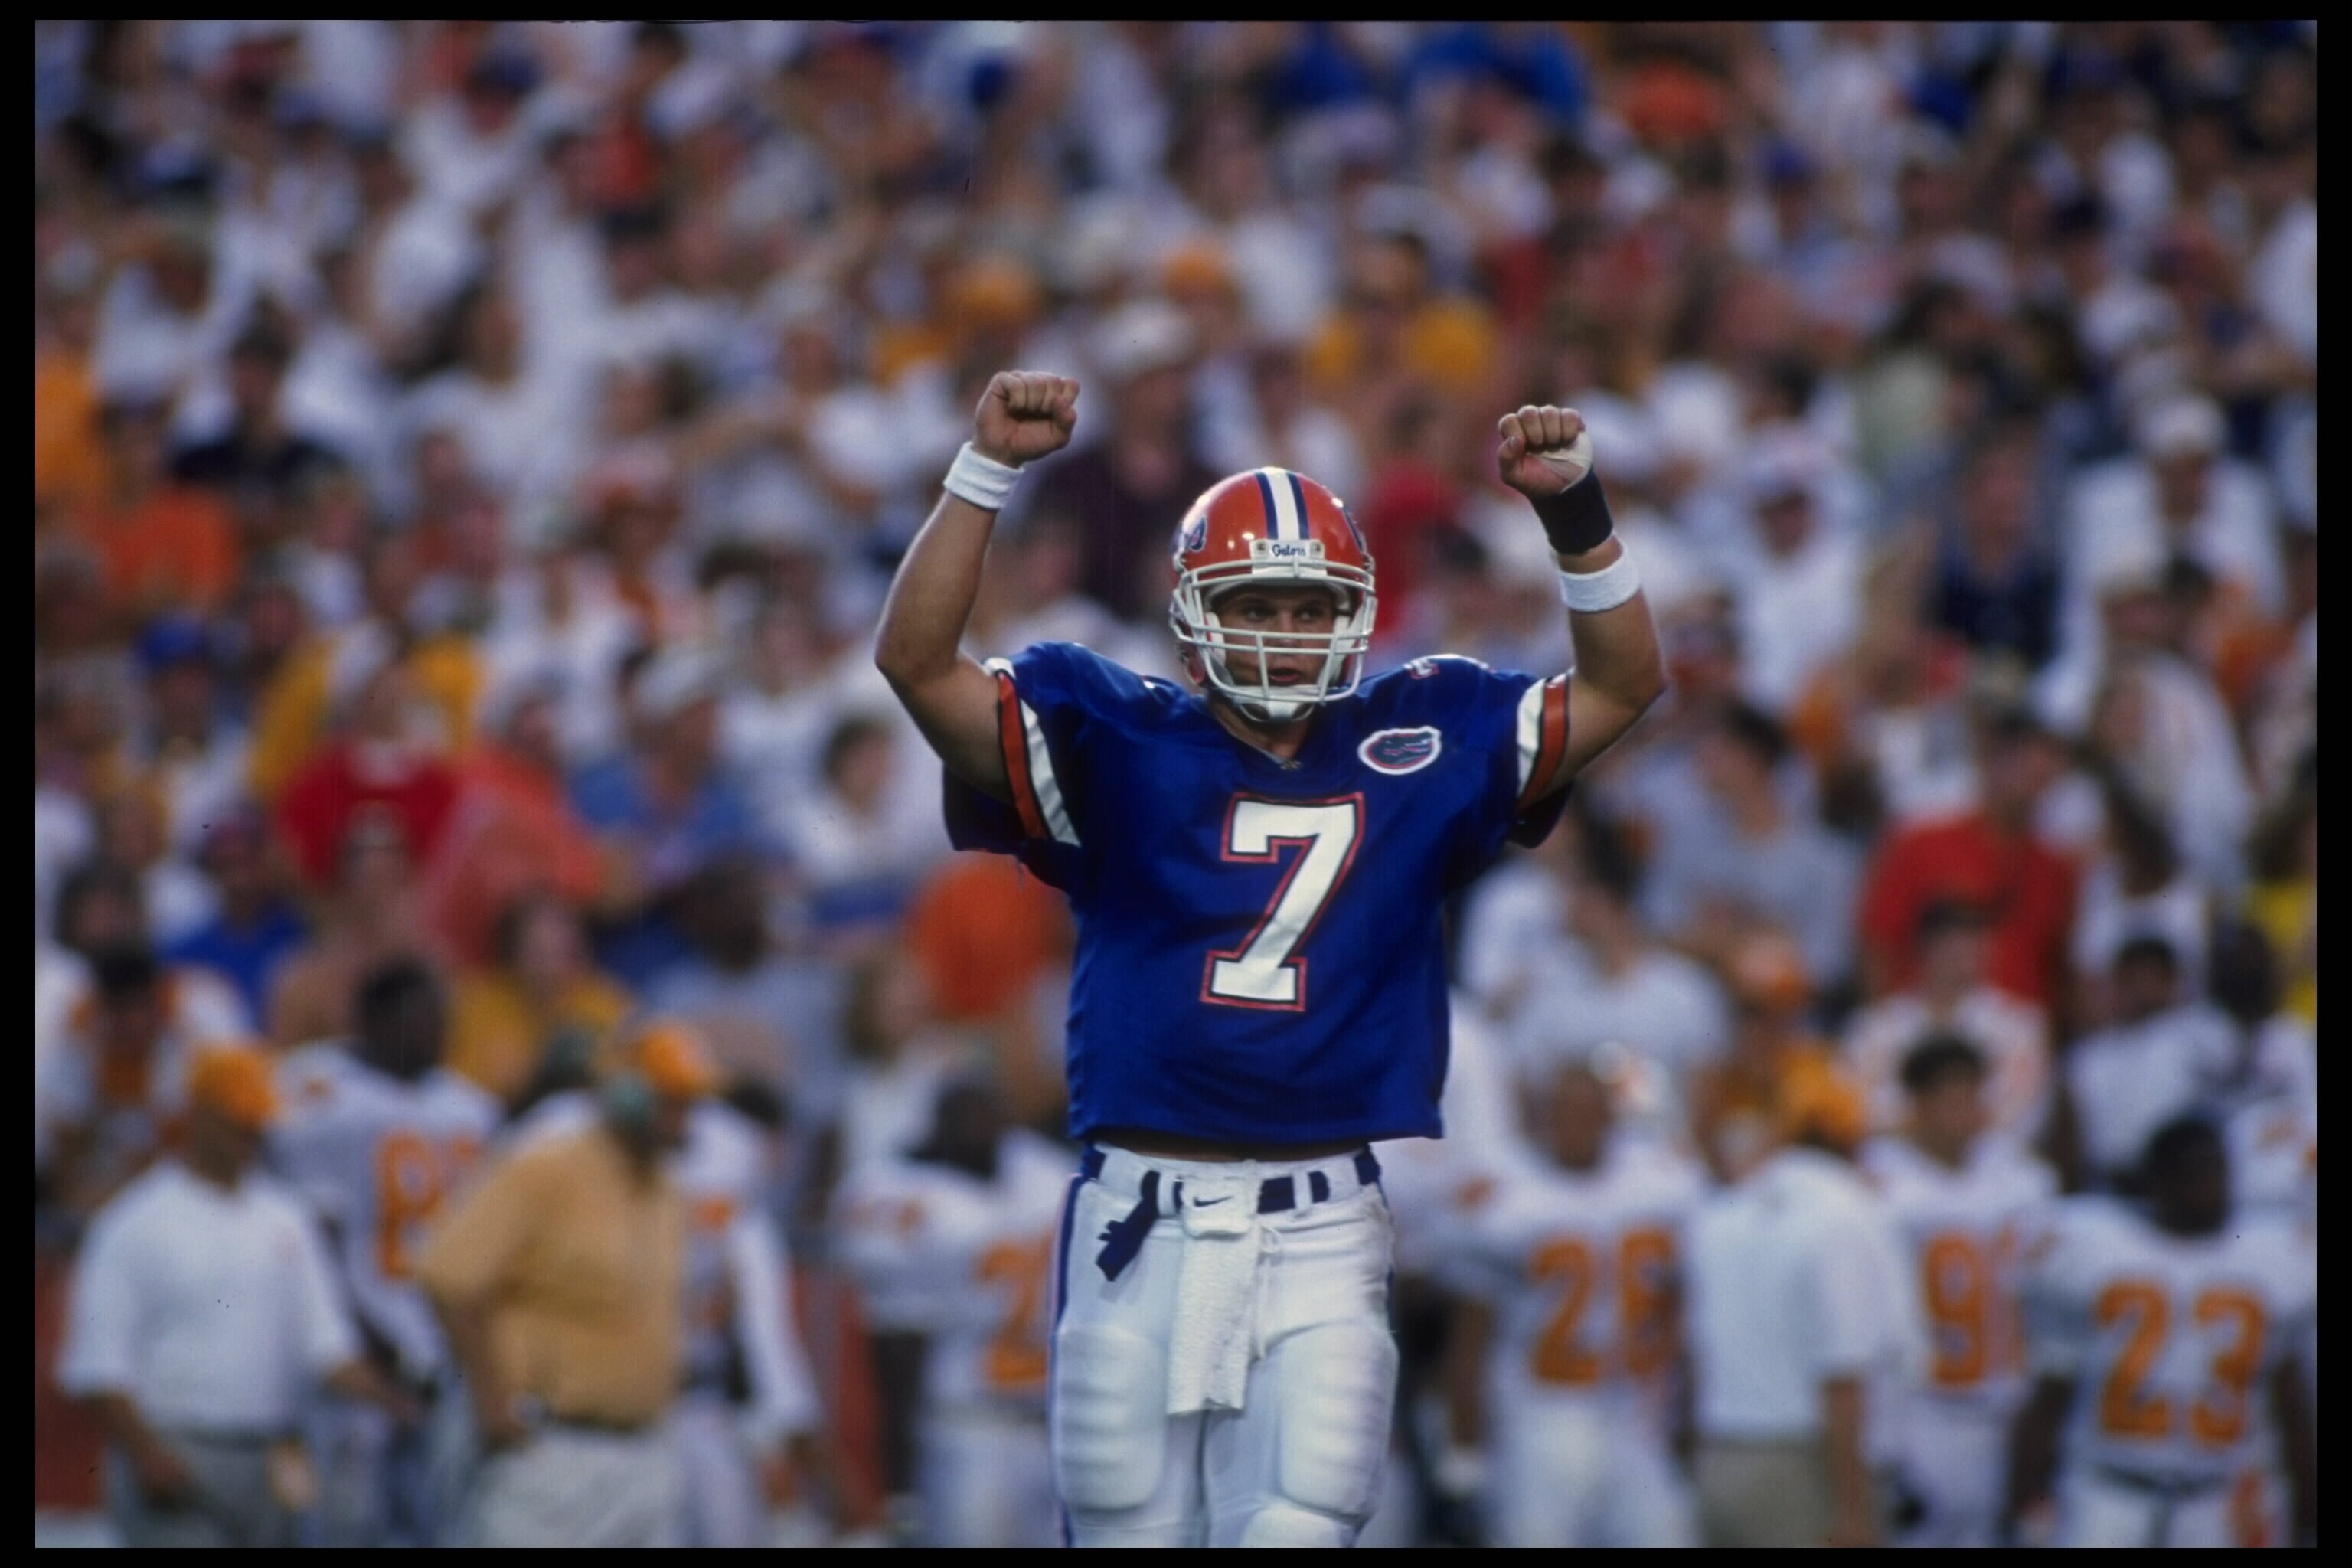 Danny Wuerffel struck this pose hundreds of times while at Florida.